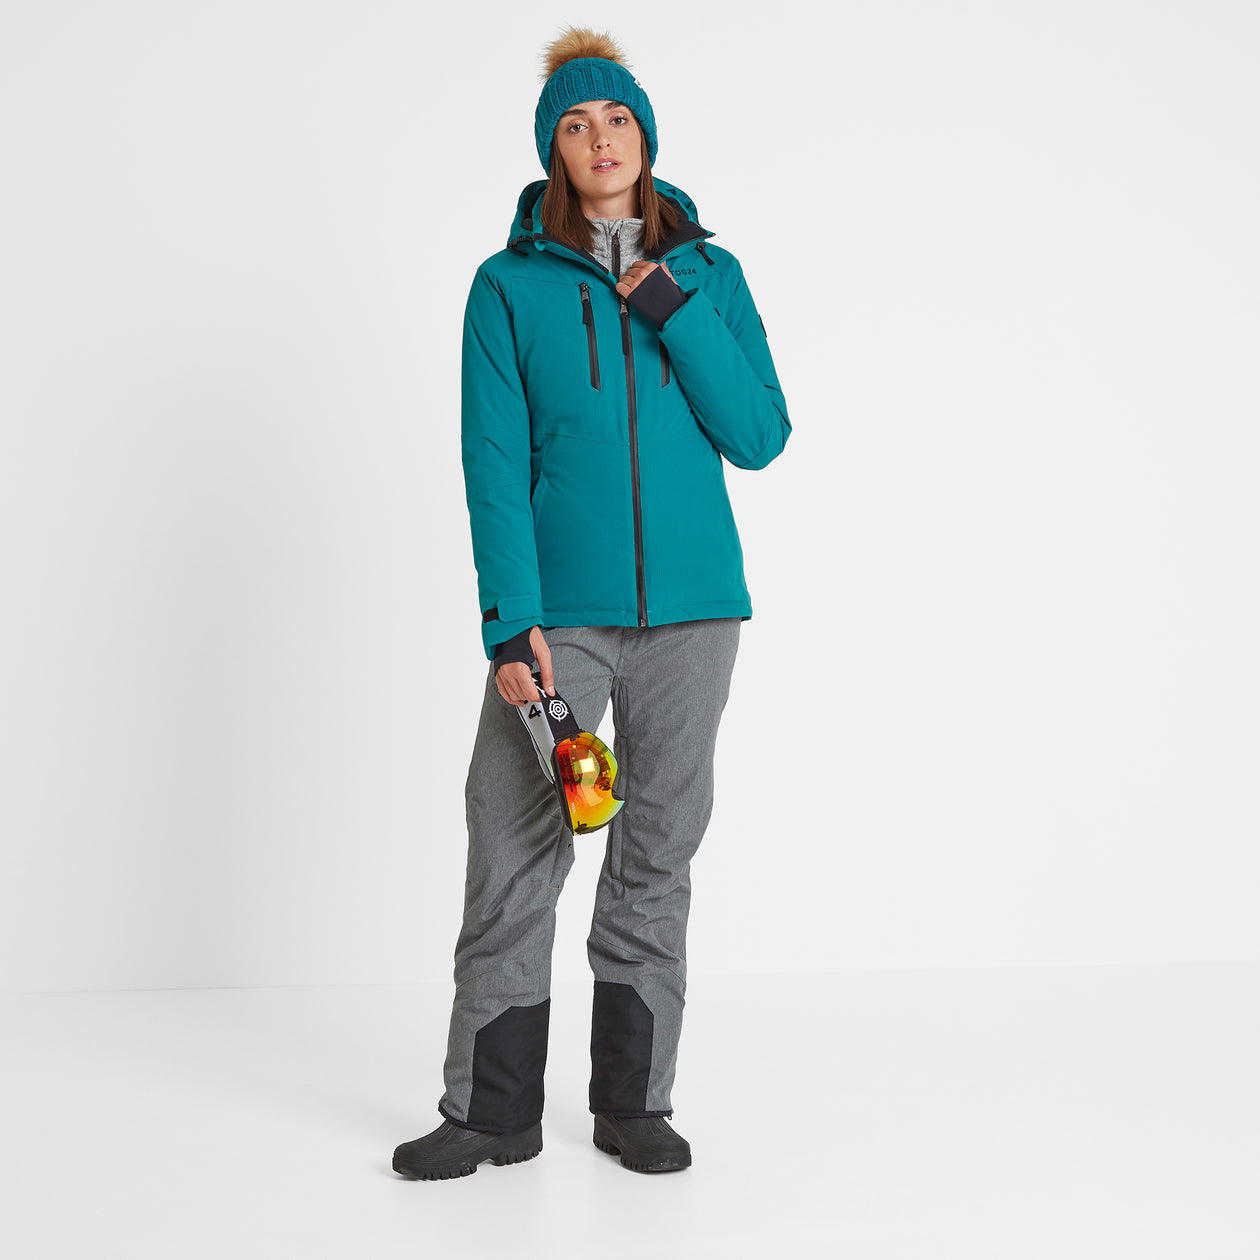 Riley Womens Waterproof Down Fill Ski Jacket - Topaz image 4